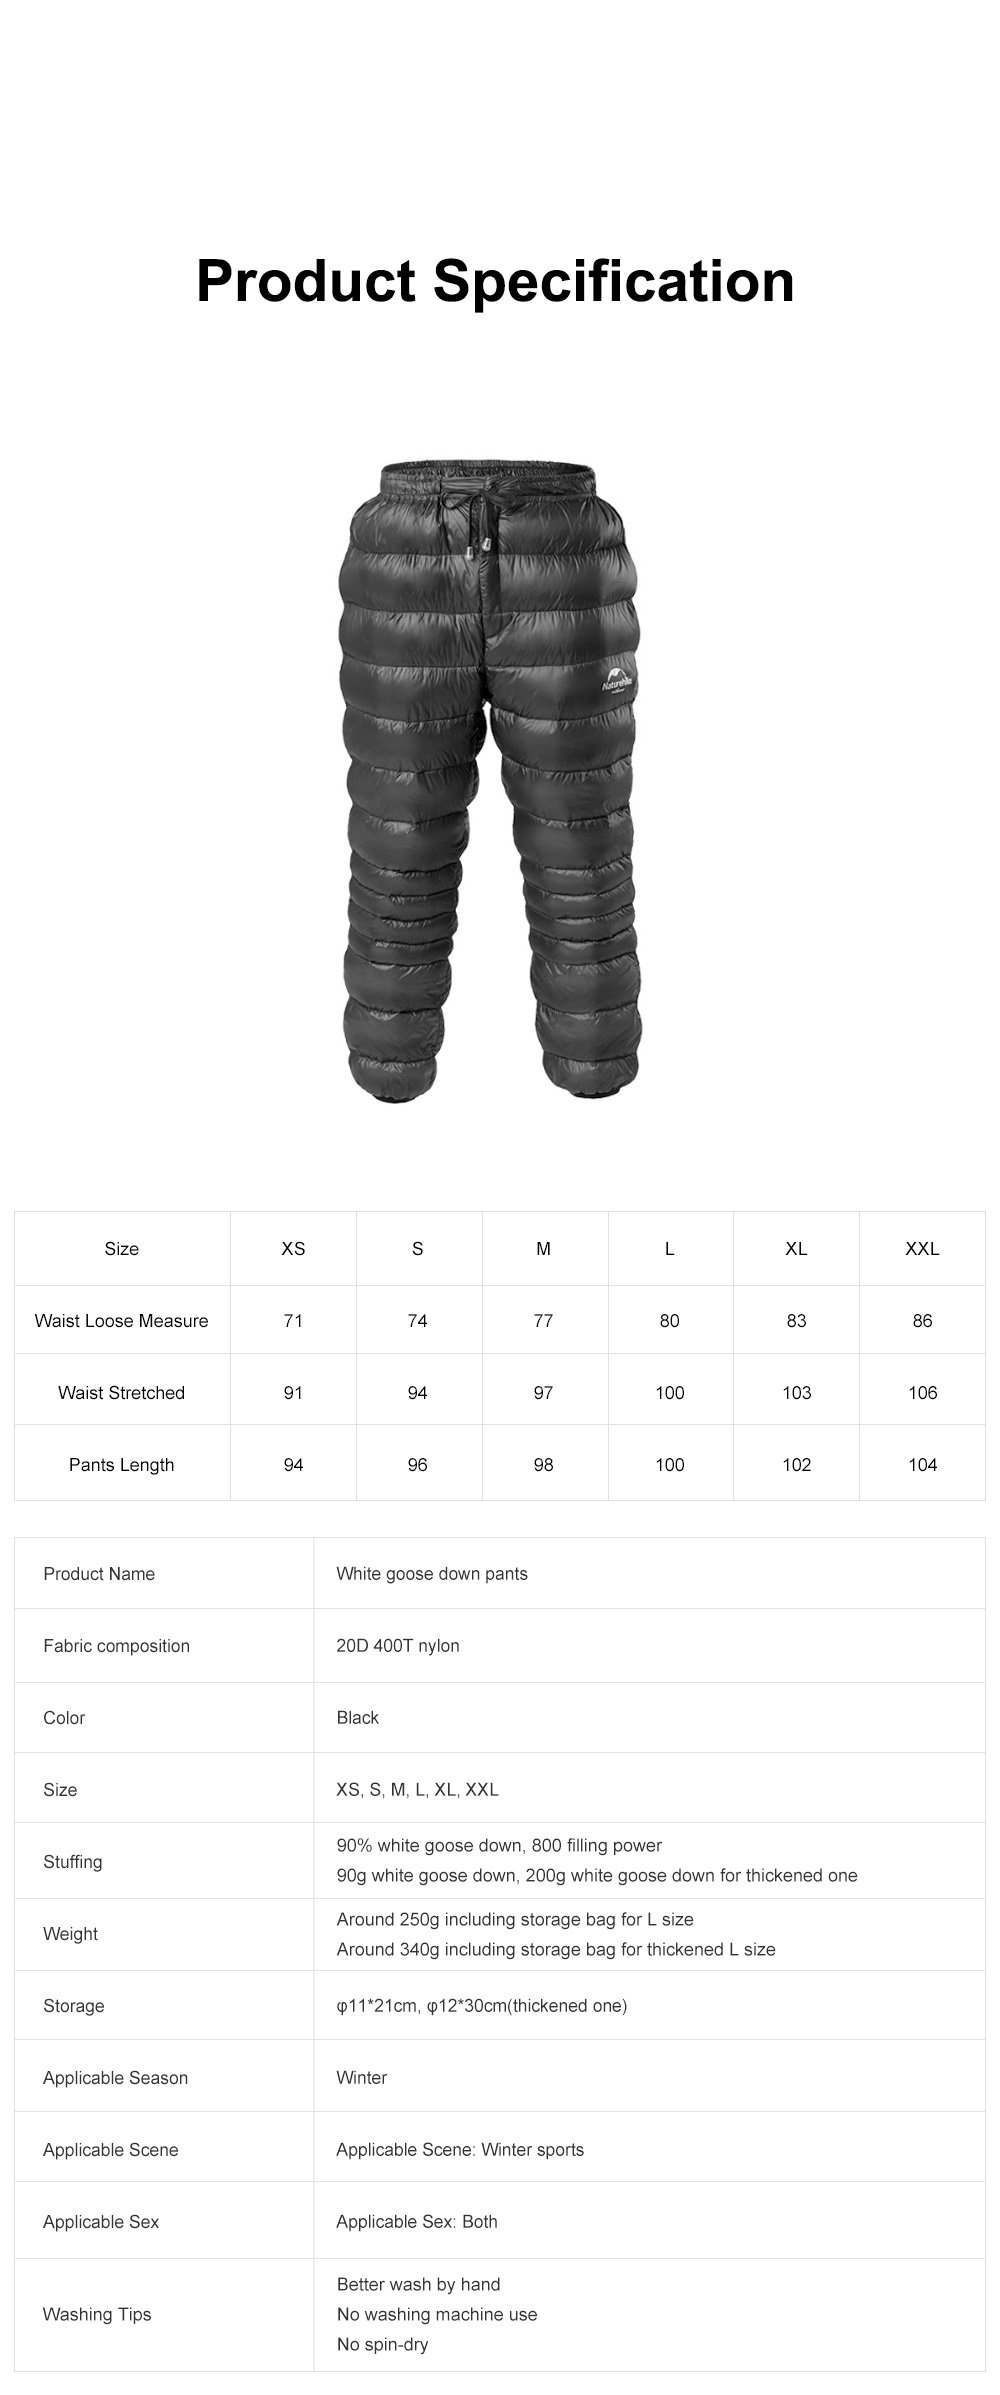 Naturehike White Goose Down Pants for Winter Sports Waterproof Thermal Winter Trousers Windproof Down Wadded Trousers Down Pants 6